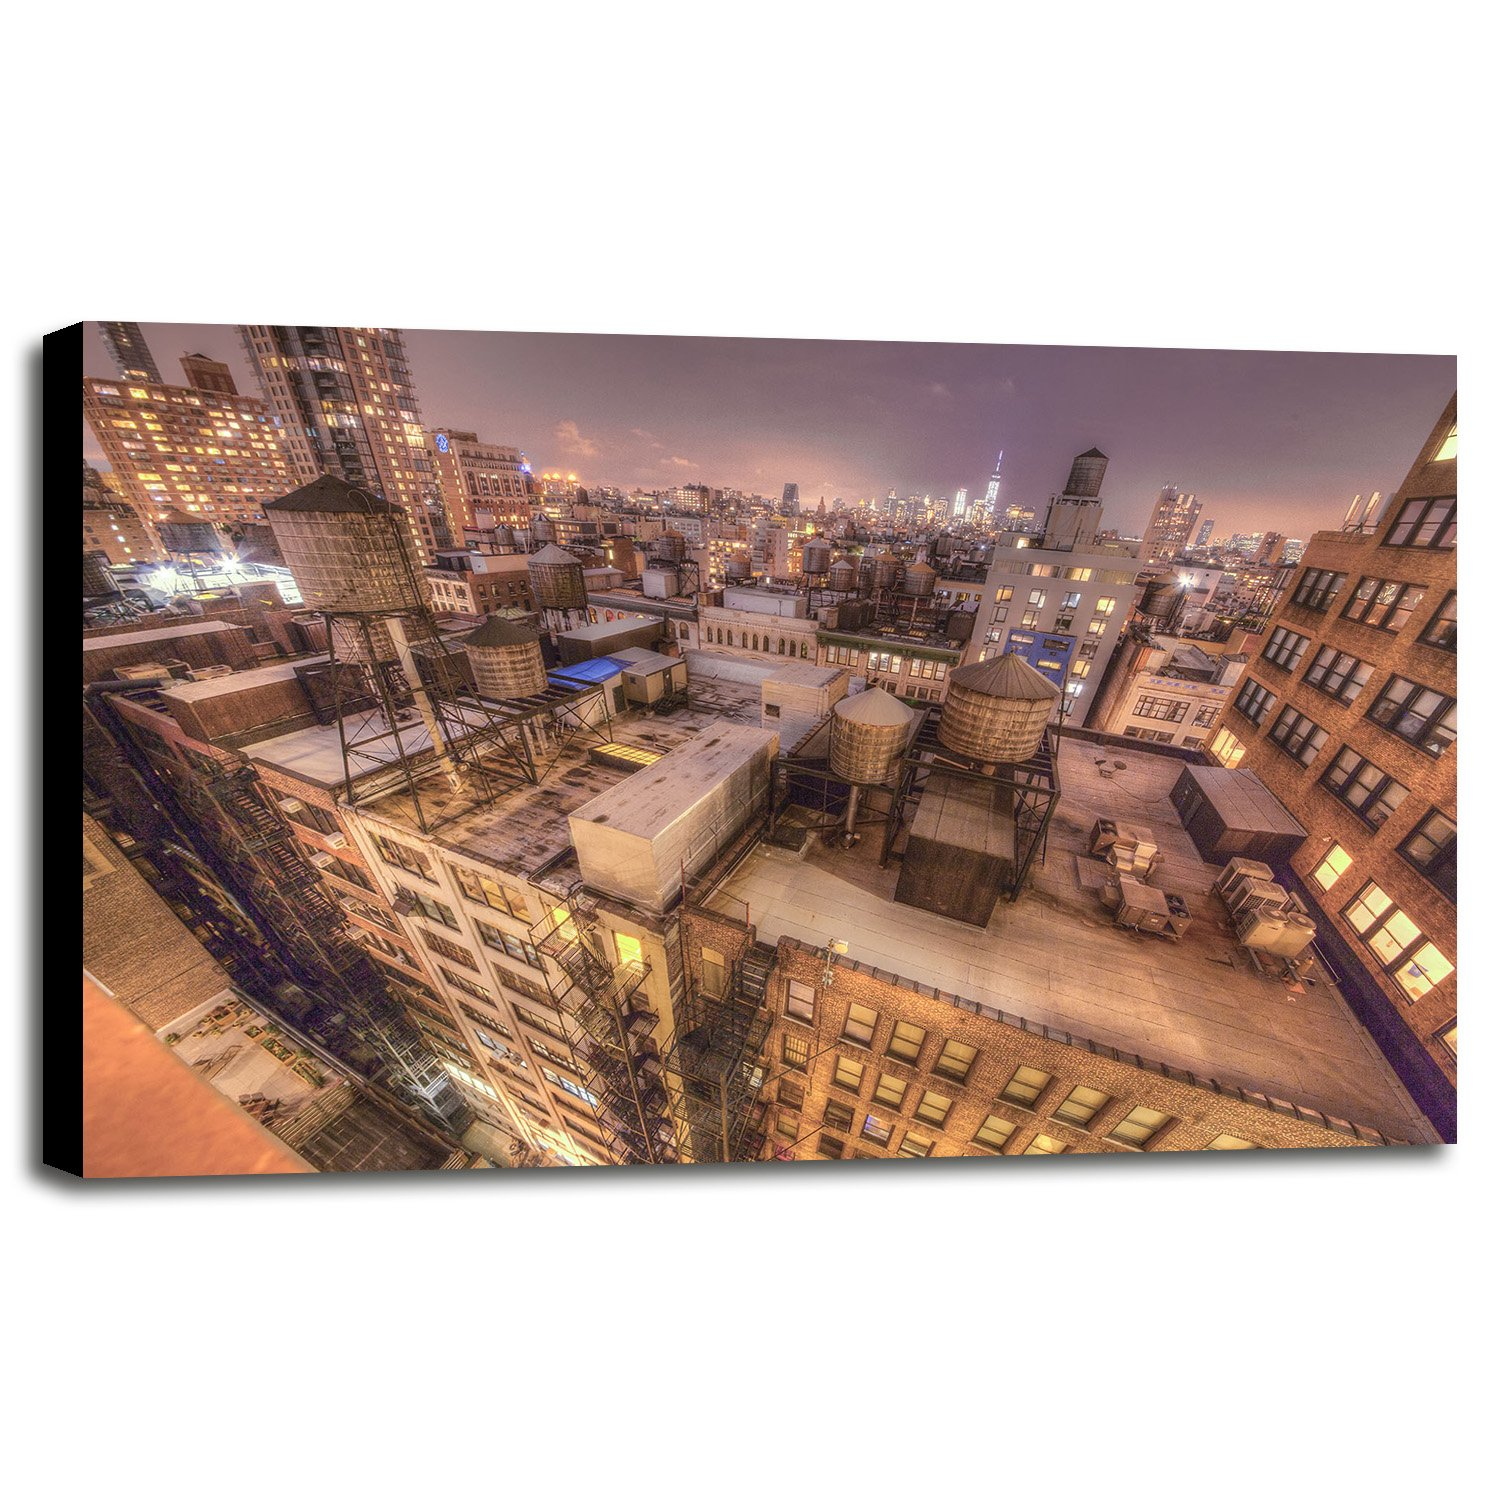 Gotham City 13 Framed Print 30.0''x45.0'' by Moises Levy